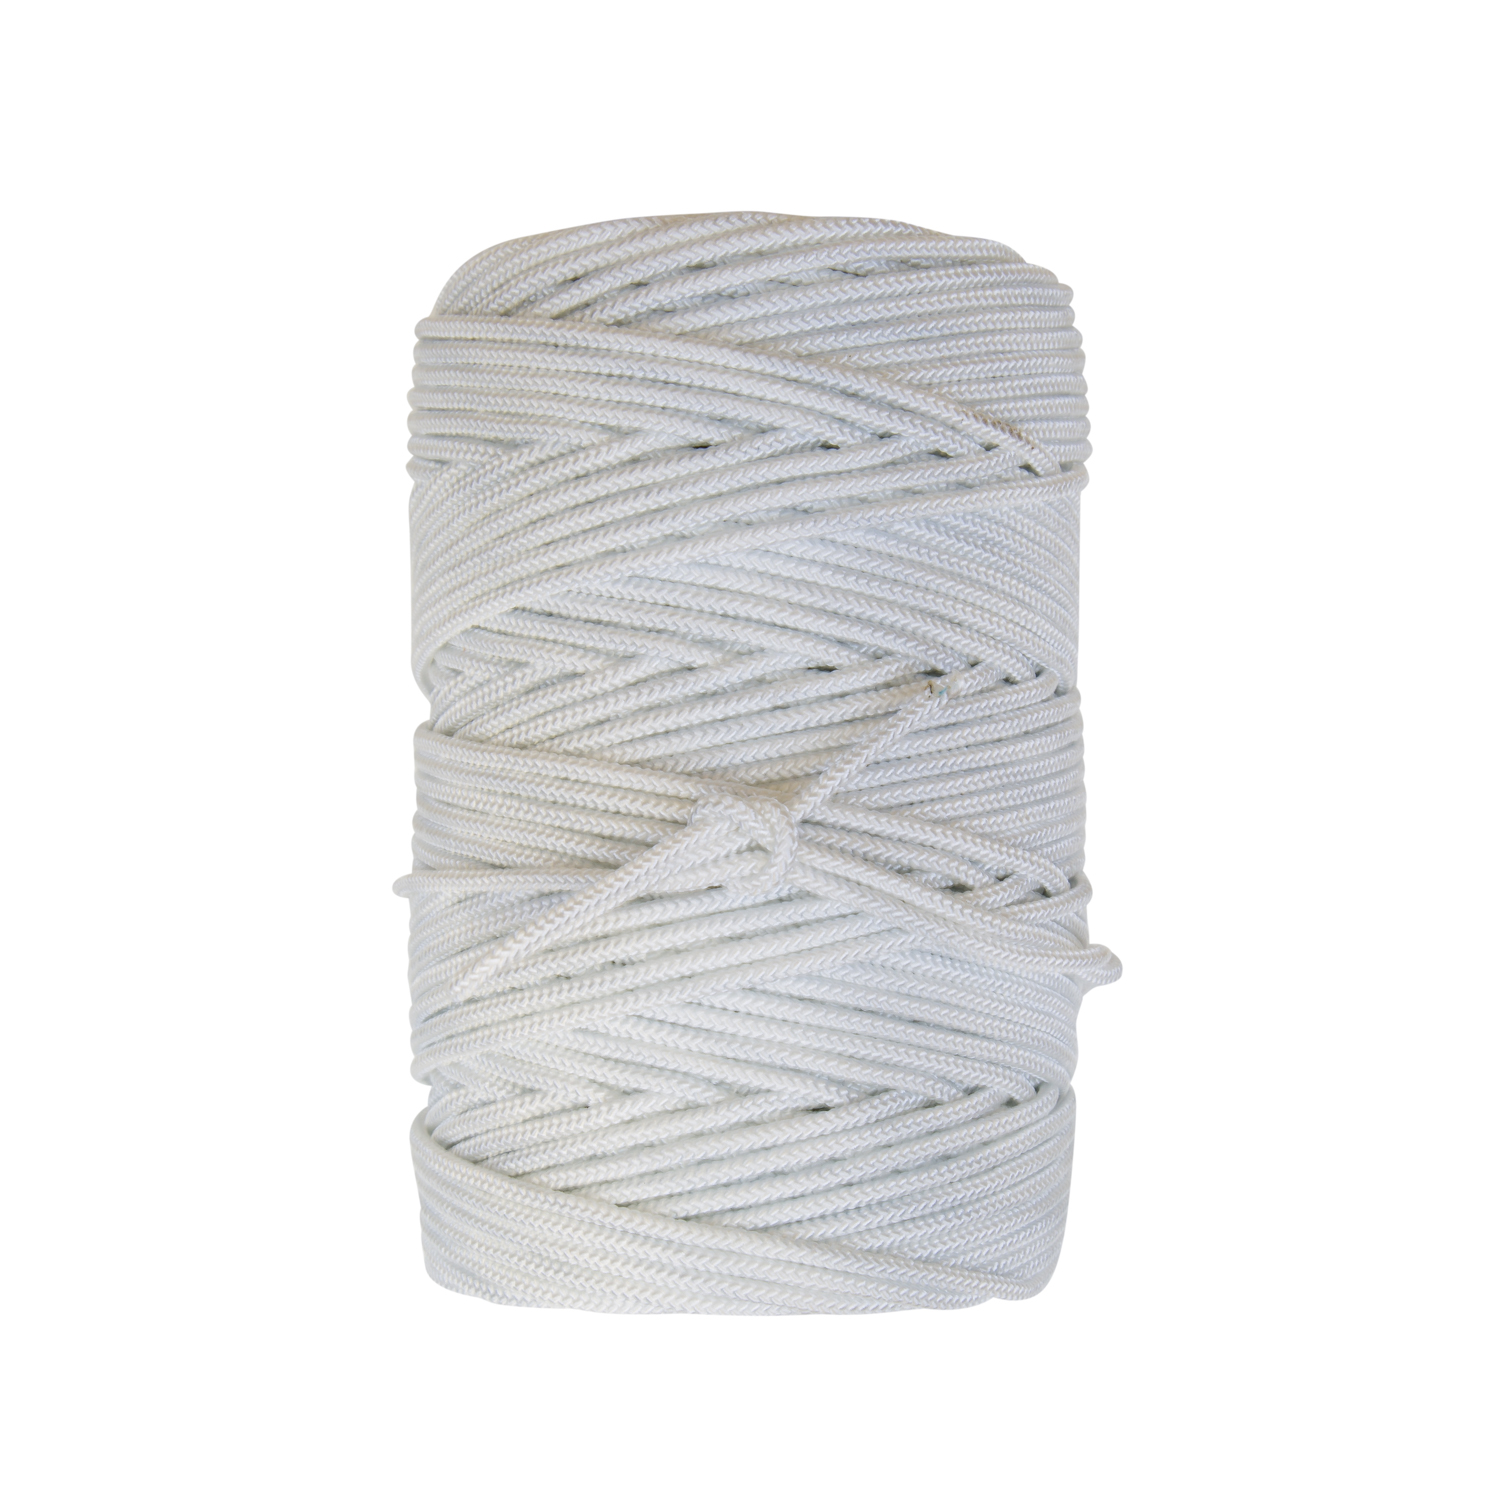 High Tenacity Hard Lay Gangen - Constructed of natural white nylons and high tenacity HMPE fibers for extra strength. Material has a firm hand lay for special applications in commercial fishing and other applications requiring a hard lay high tenacity cordage.